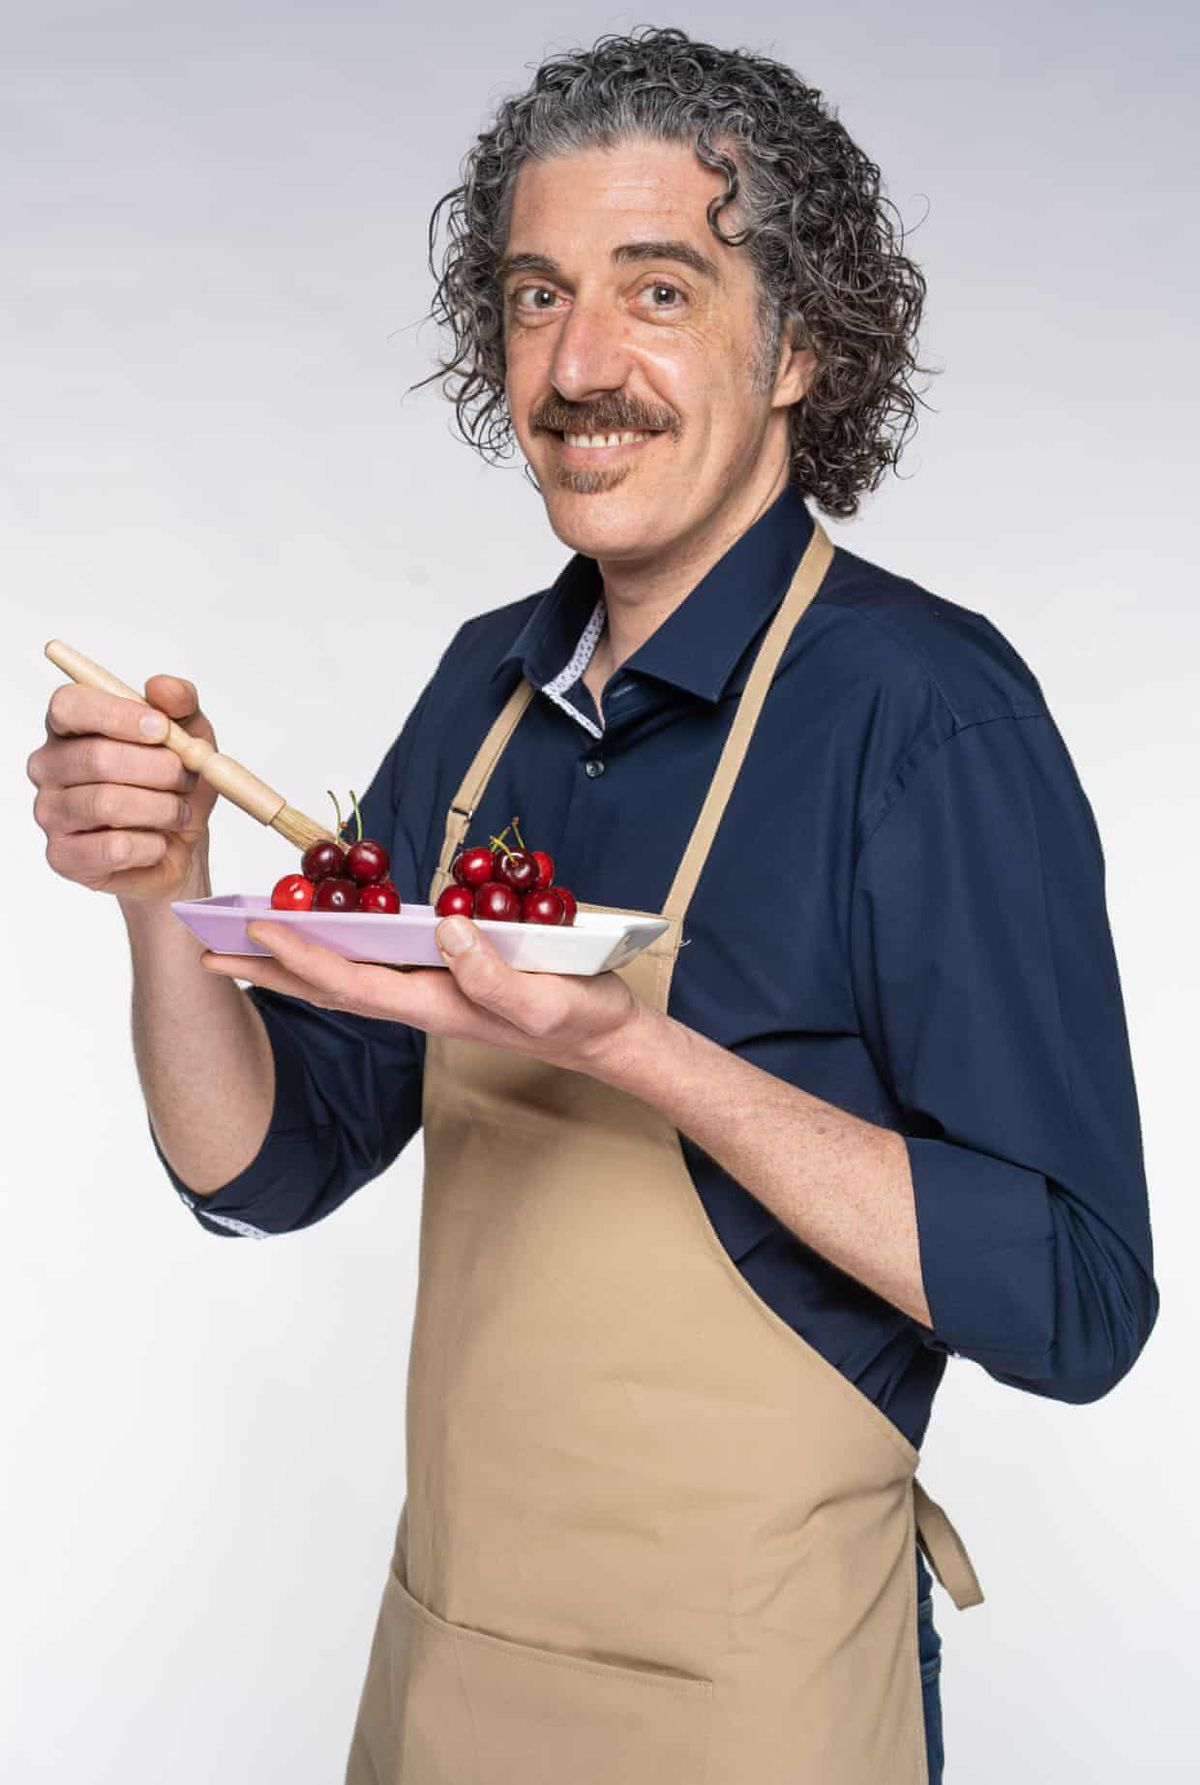 Great British Bake Off 2021 contestant Guiseppe, who will compete on GBBO this year